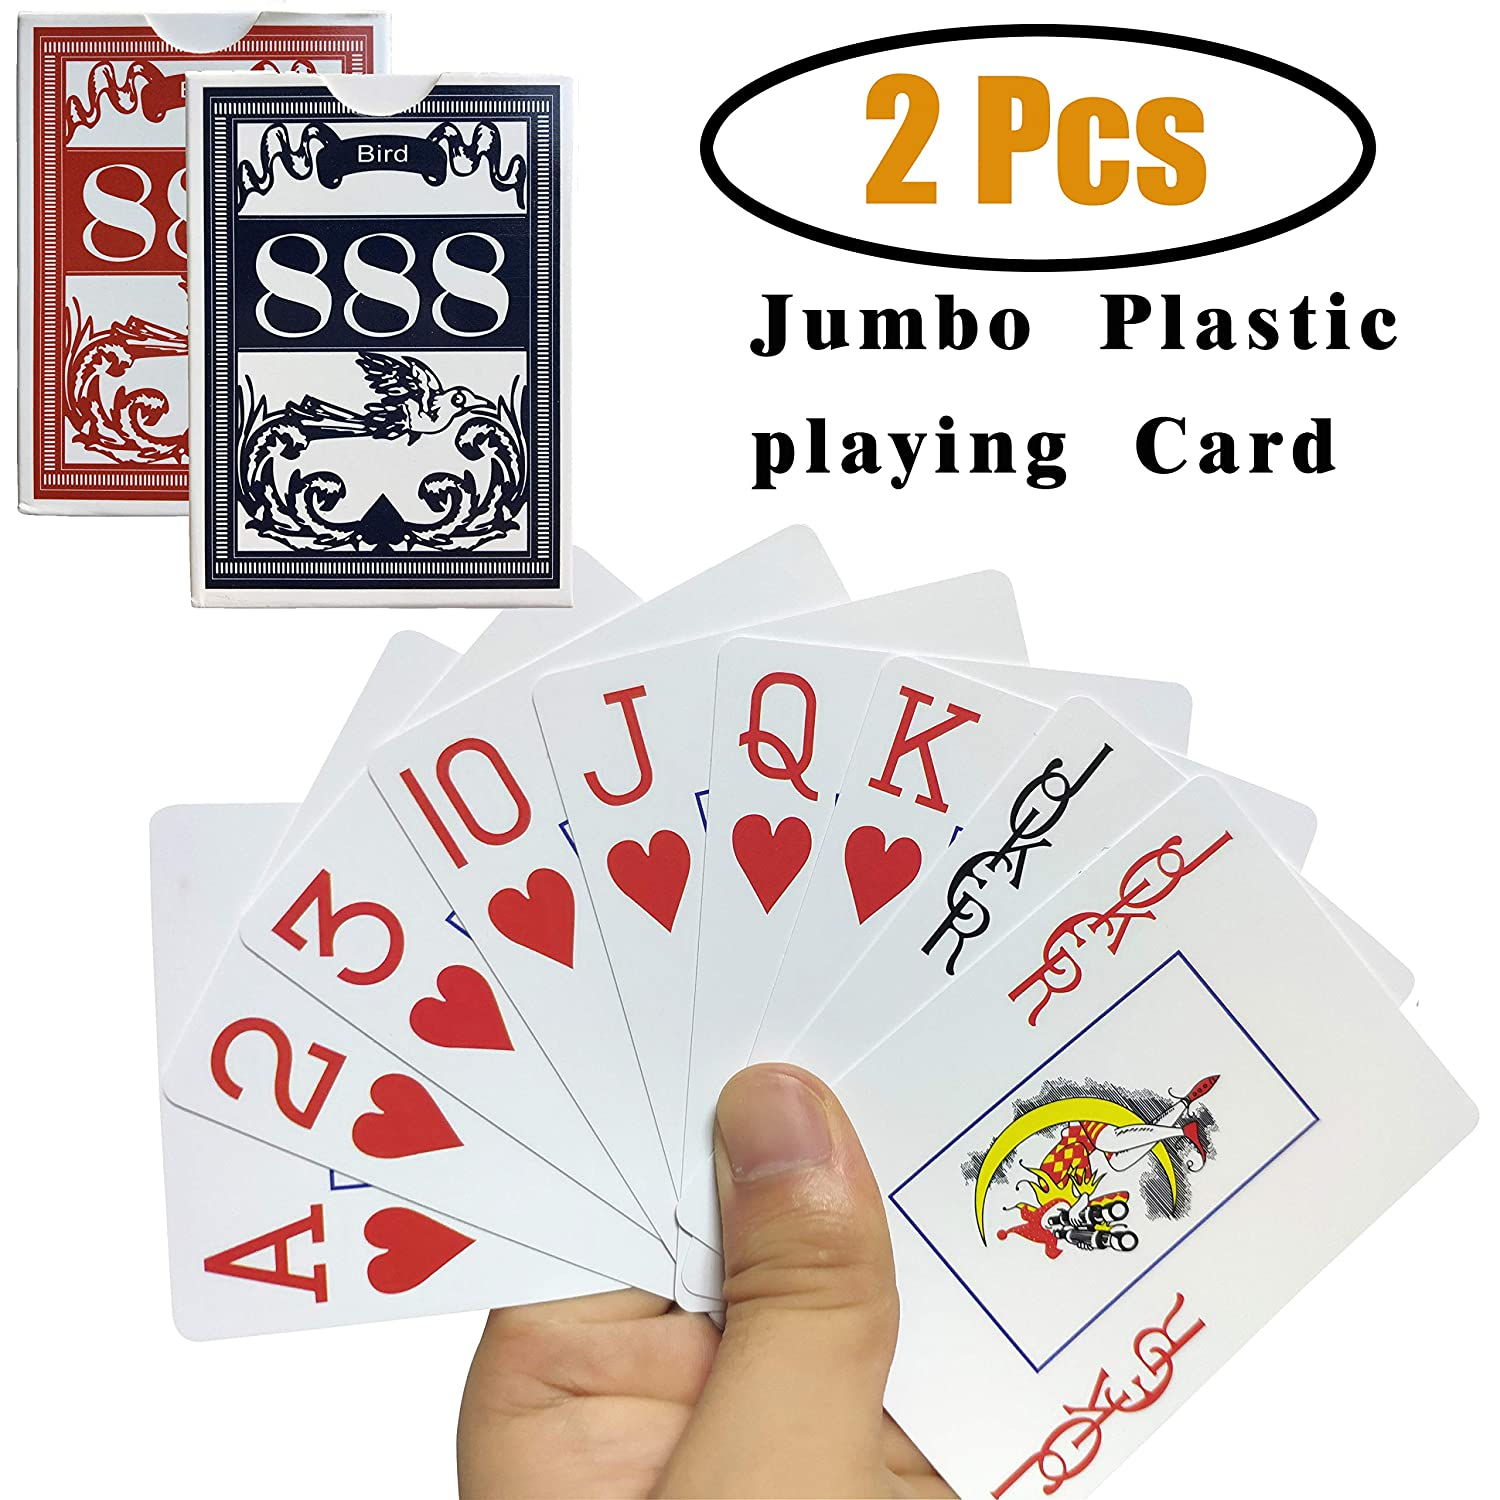 Blackjack Pool Beach Water Games and All Kind of Beer Drinking Card Games for Texas Hold/'em DZPLP for Magic Props Pinochle for Texas Holdem Euchre Neasyth Waterproof Plastic Playing Cards,Jumbo Index